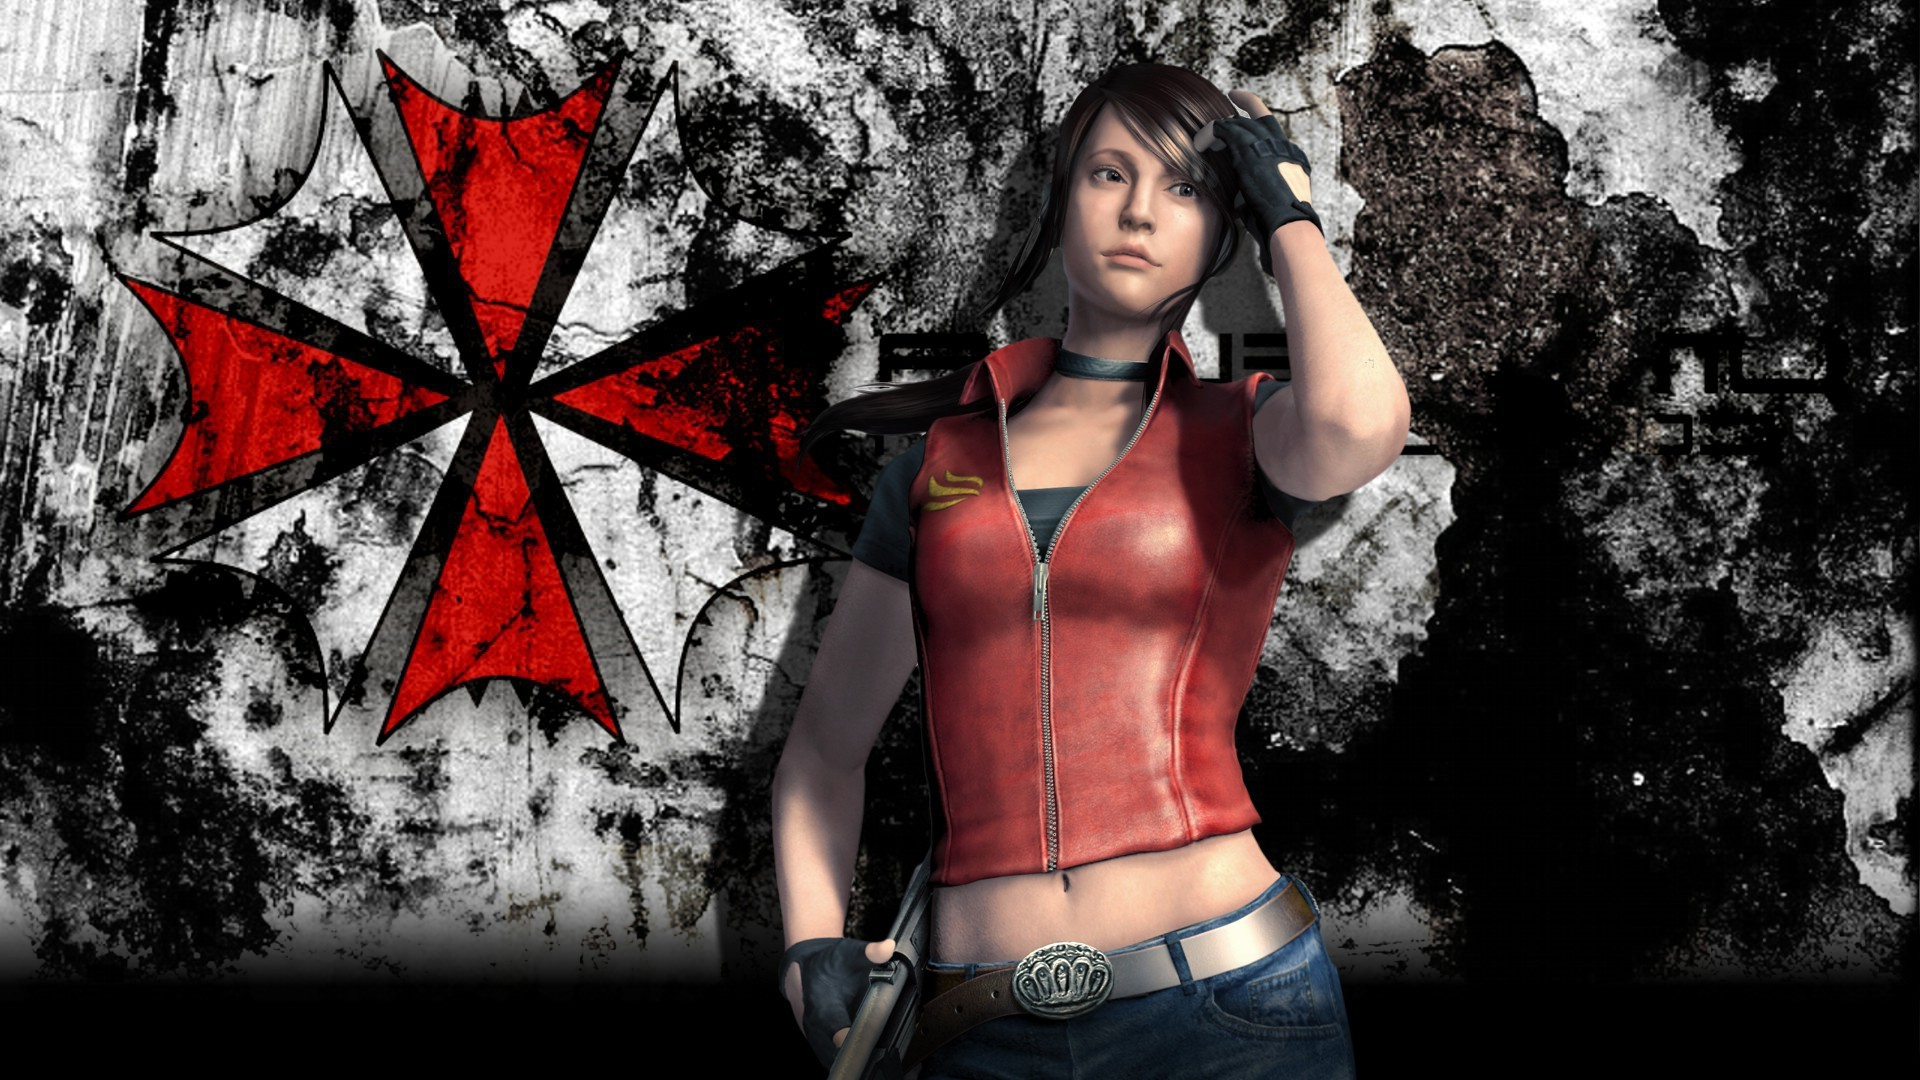 1920x1080 Resident Evil, Video Games, Claire Redfield